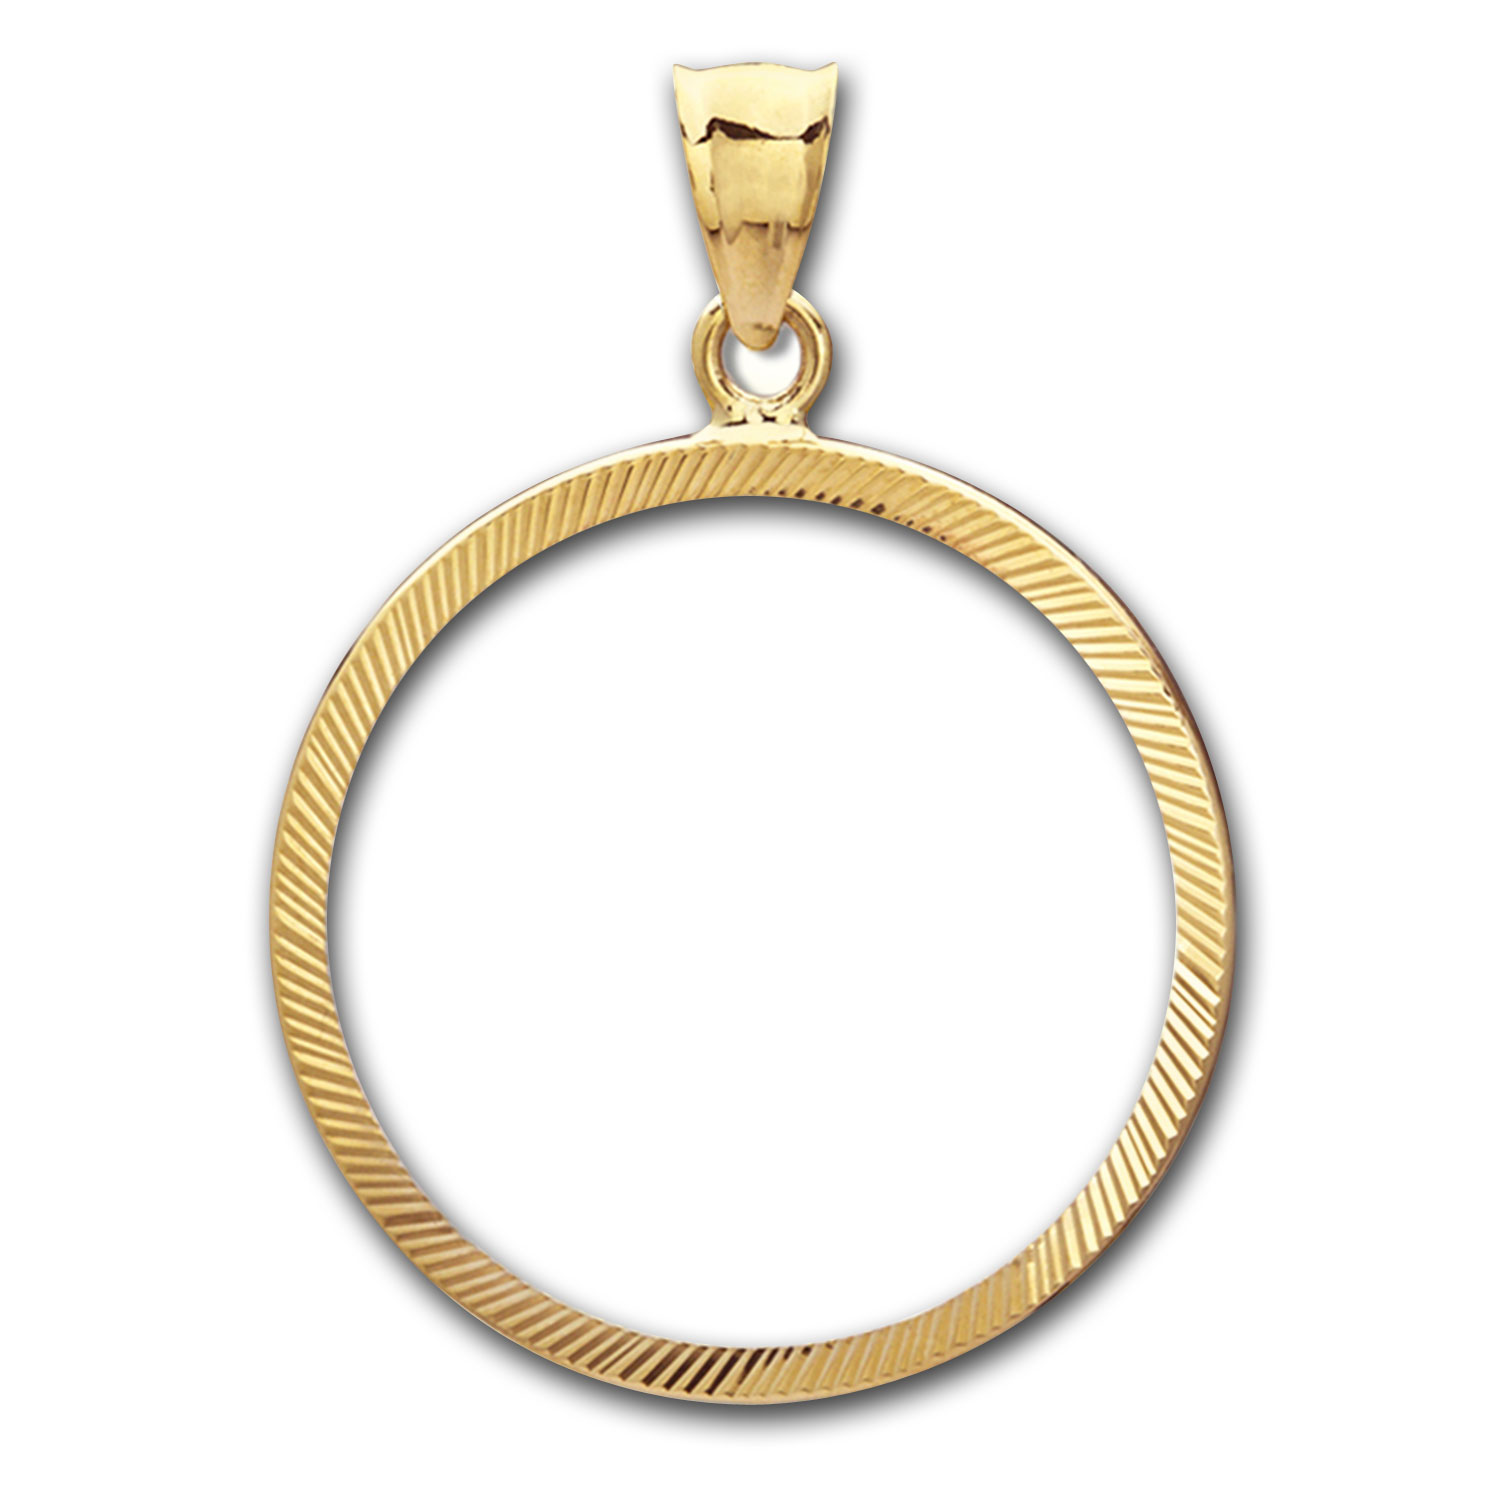 14K Gold Prong Diamond-Cut Coin Bezel - 16.5 mm